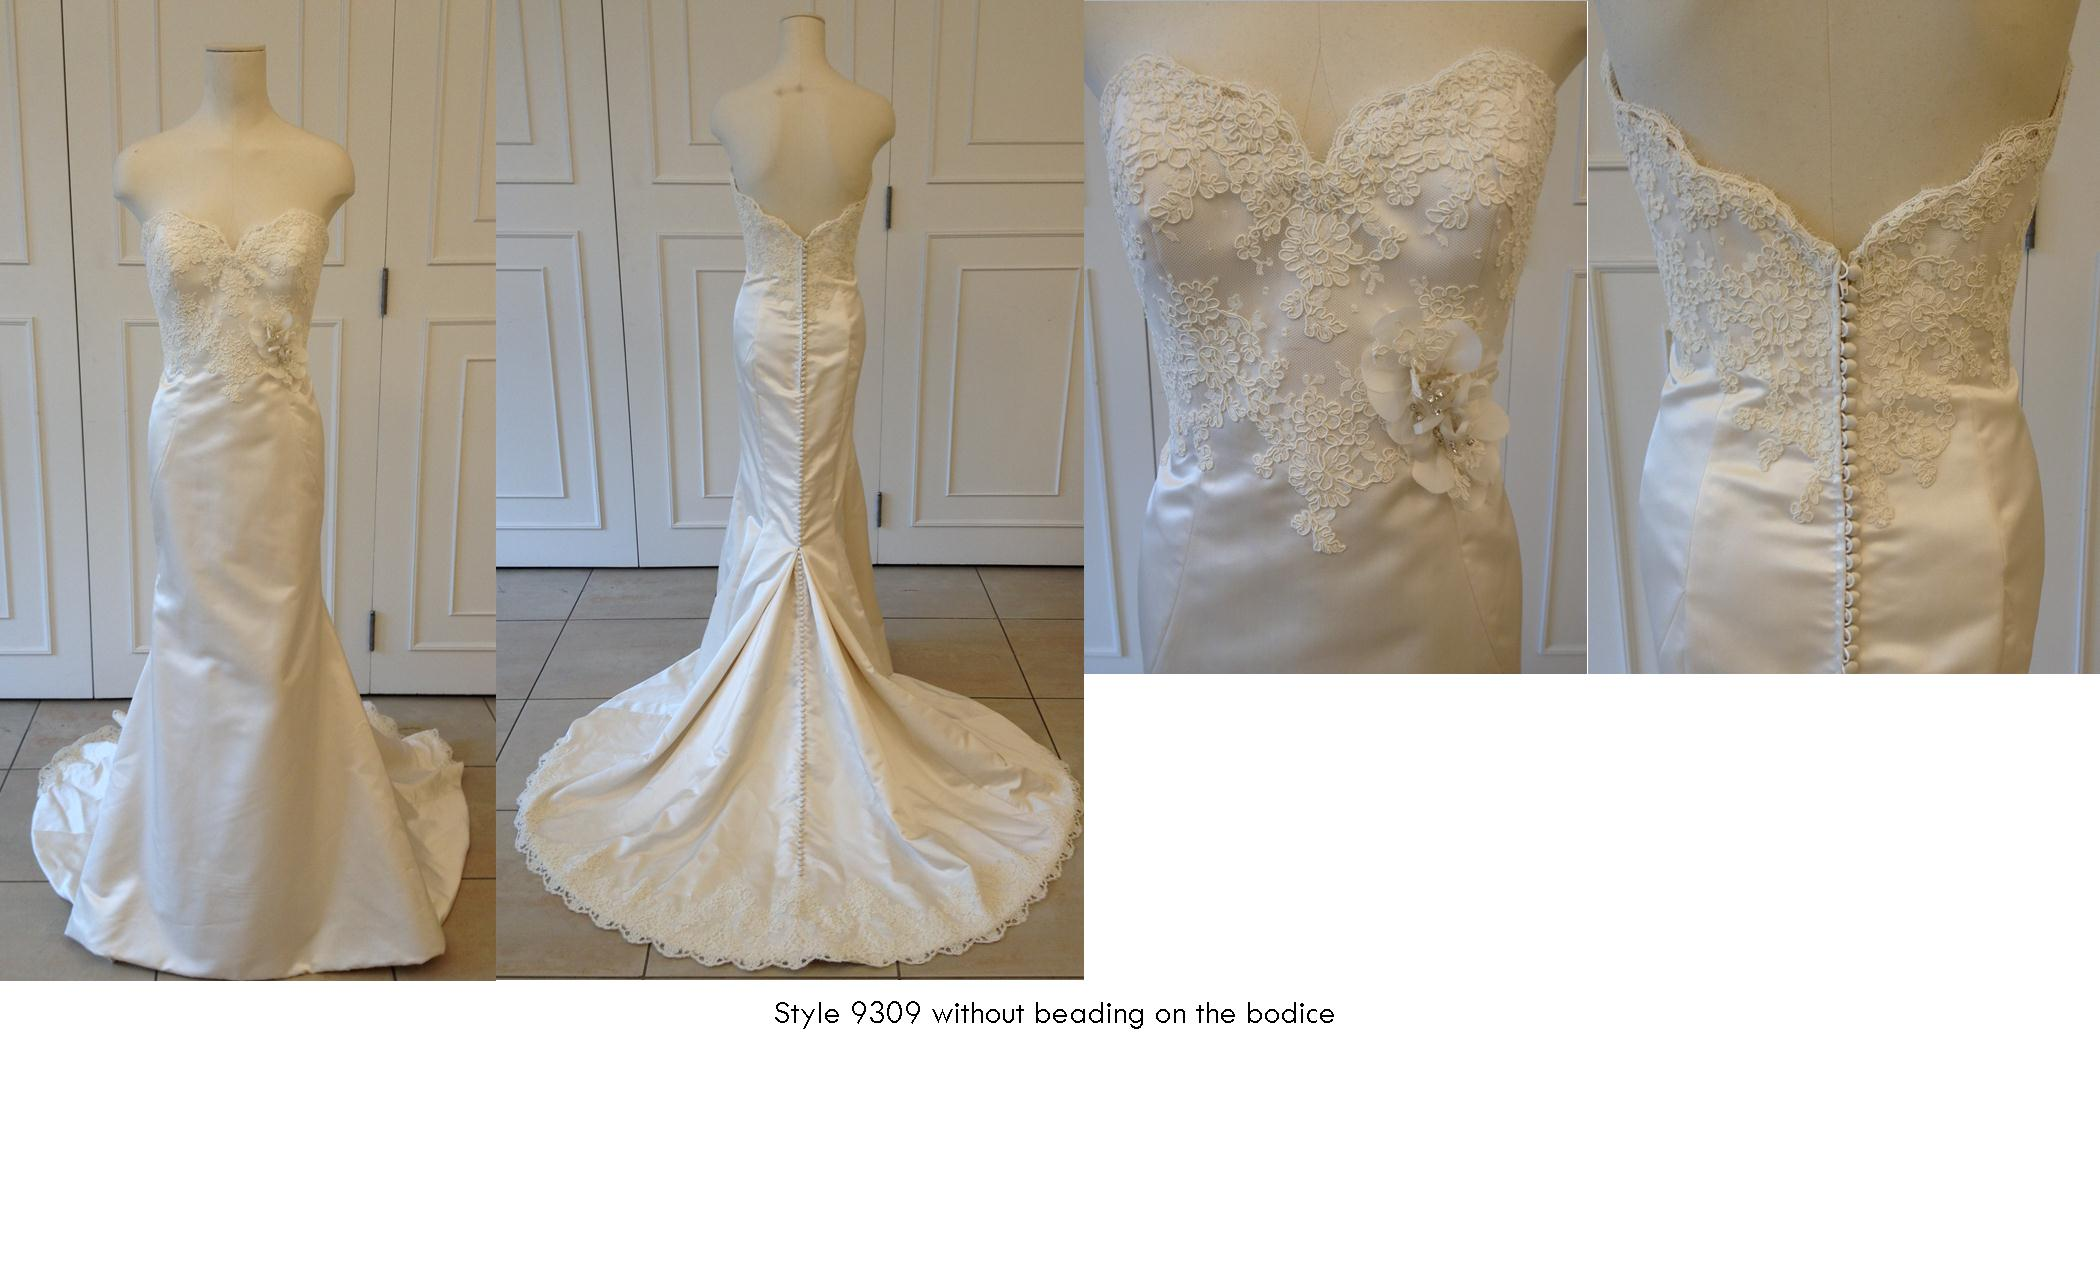 9309 with no beading on the bodice